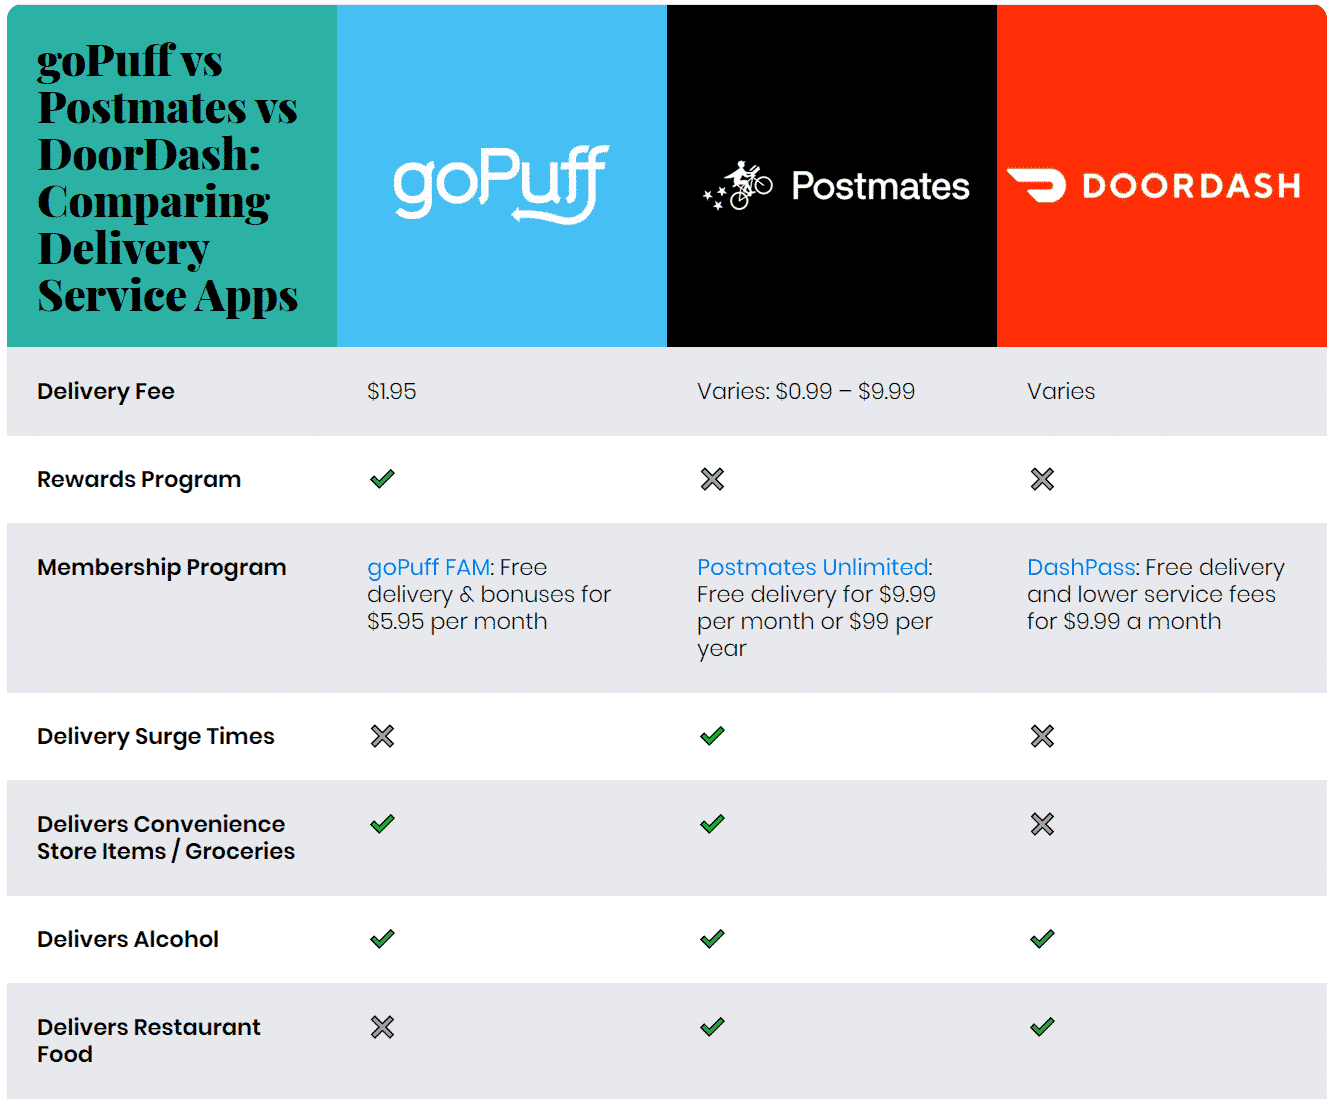 How does goPuff compare to delivery services like Postmates and DoorDash?